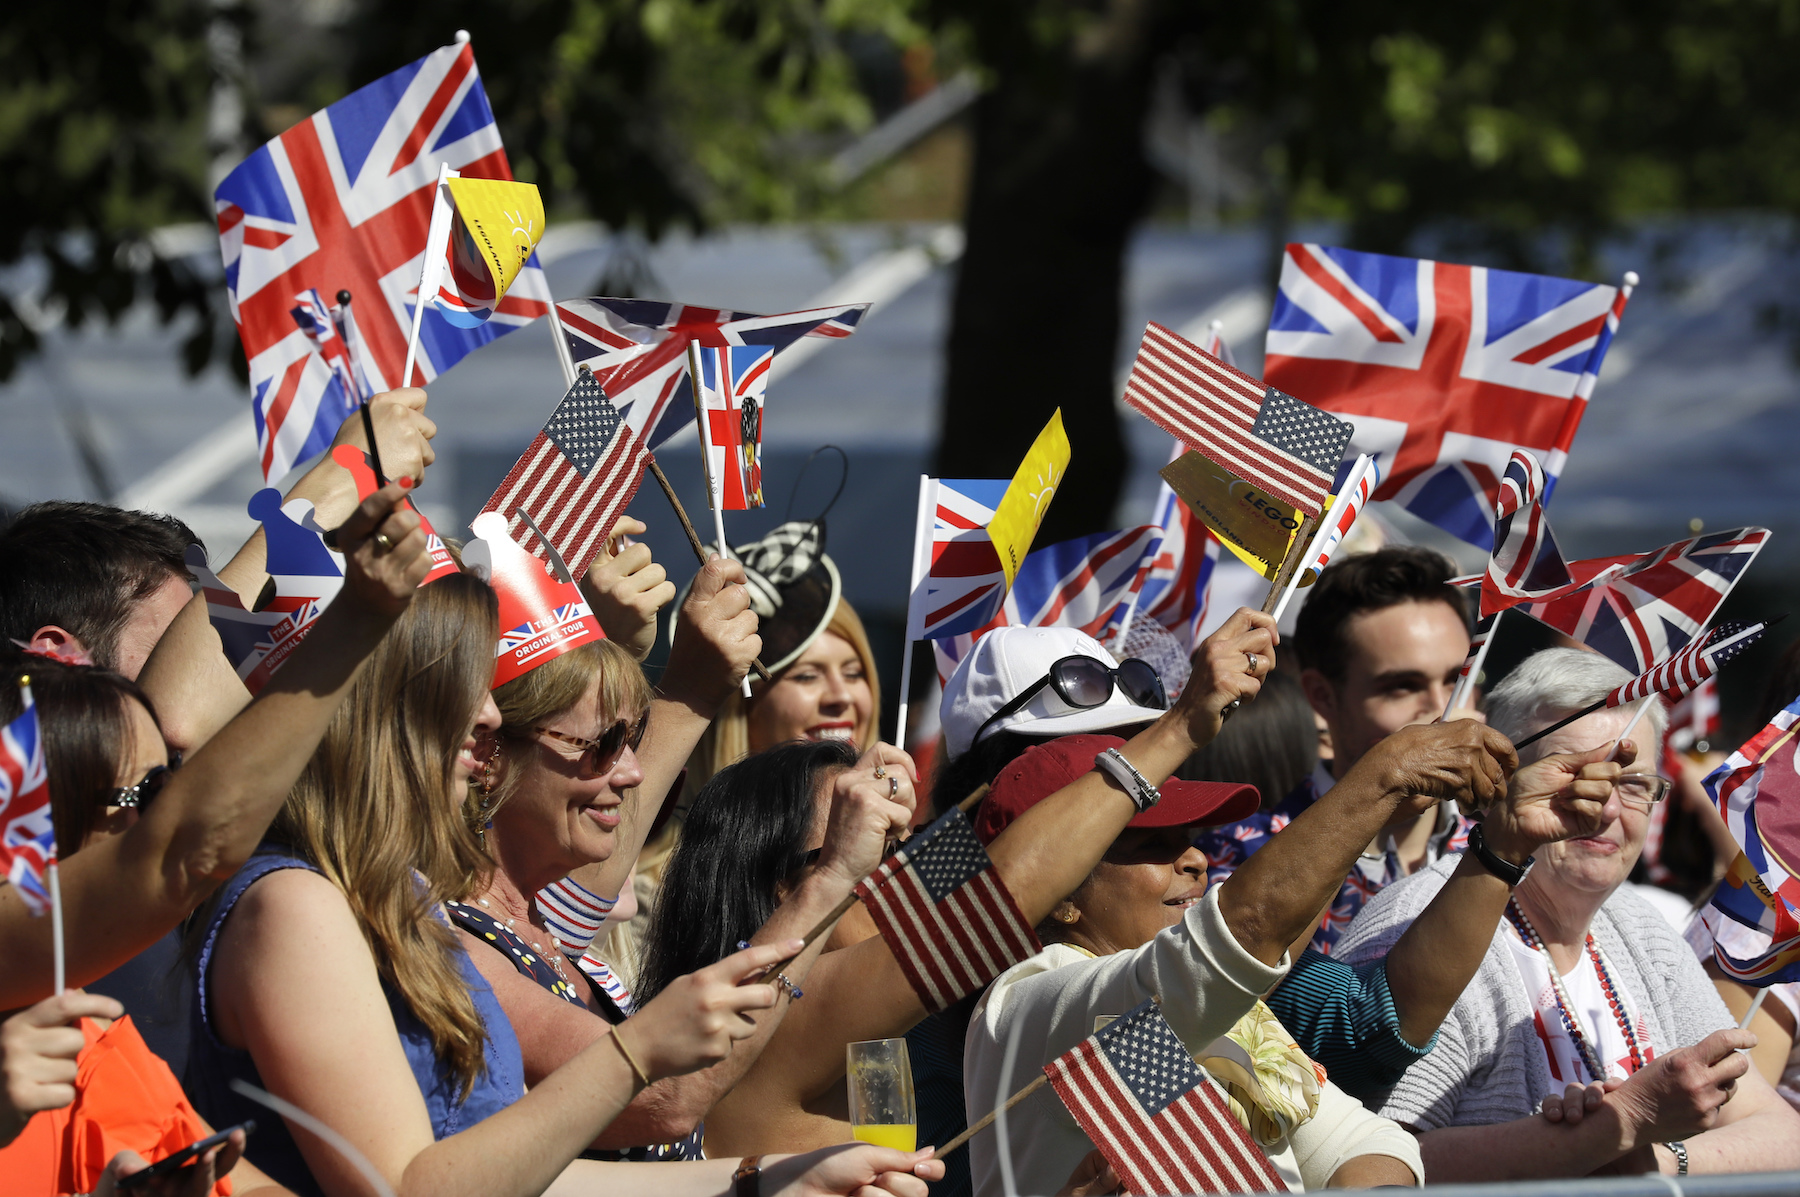 <div class='meta'><div class='origin-logo' data-origin='AP'></div><span class='caption-text' data-credit='AP Photo/Kirsty Wigglesworth'>Well-wishers wave British and American flags prior to the wedding ceremony of Prince Harry and Meghan Markle at St. George's Chapel.</span></div>